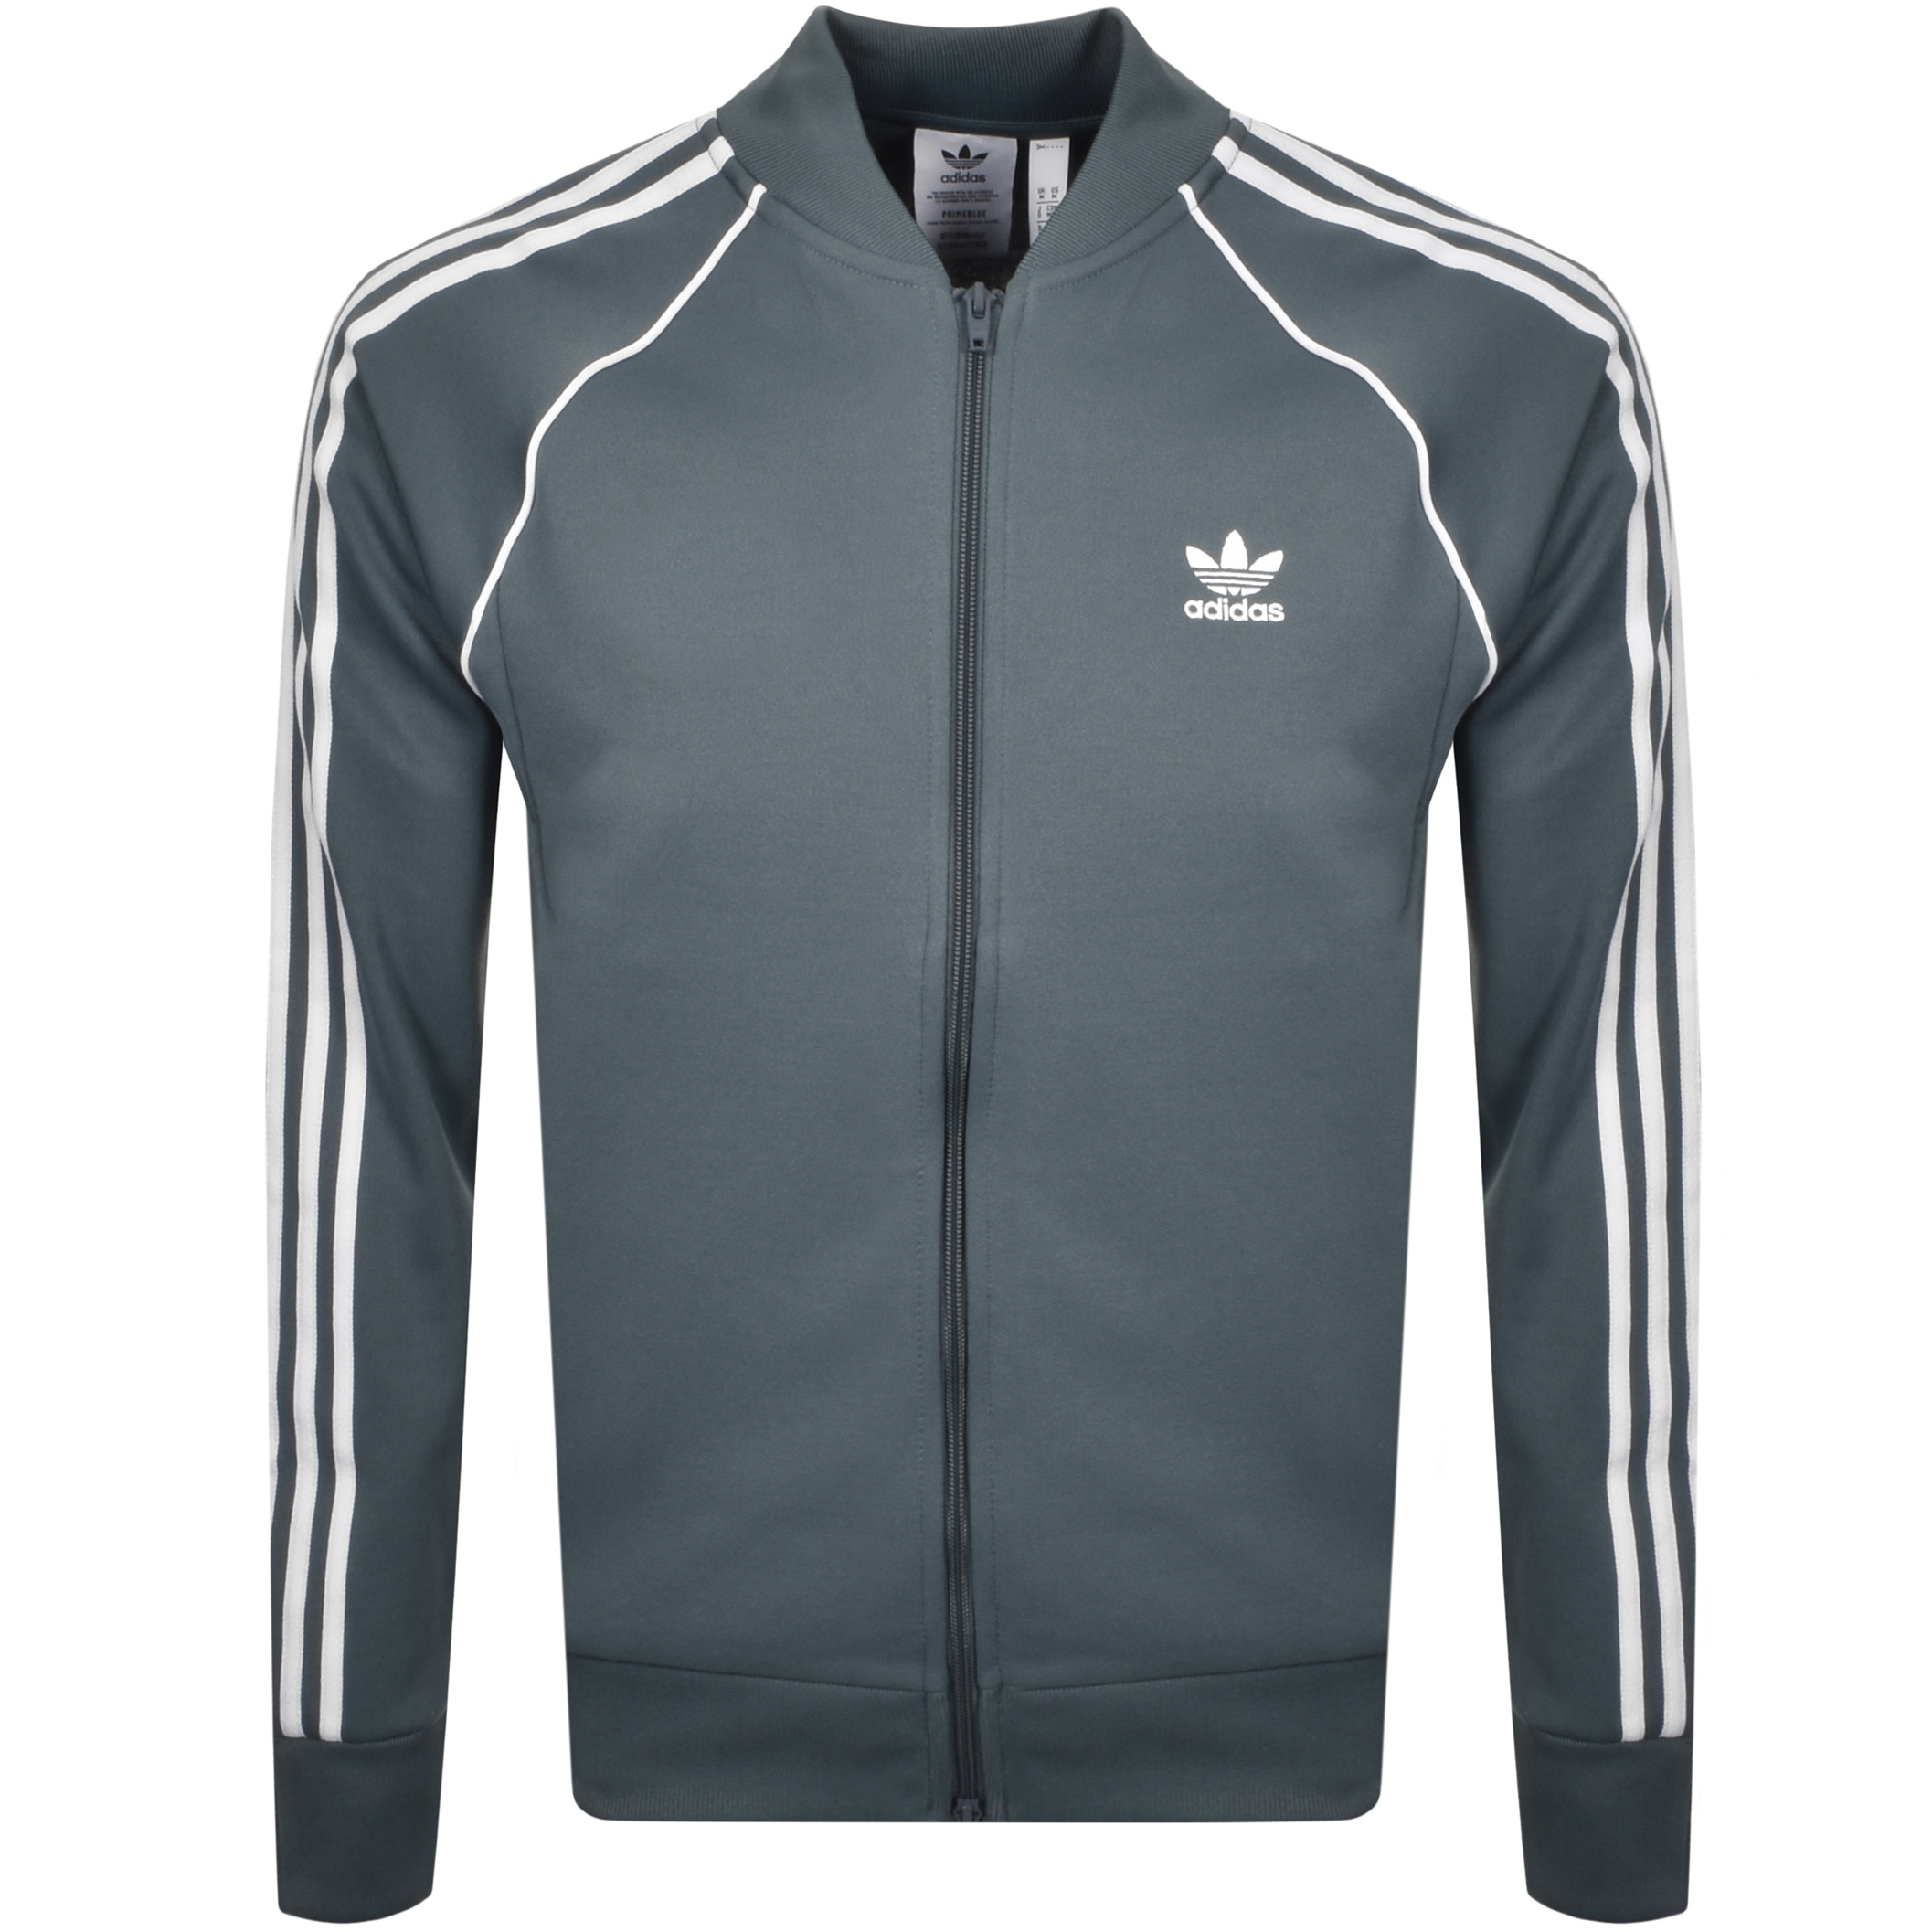 Adidas Originals ADIDAS ORIGINALS SUPERSTAR TRACK TOP GREY